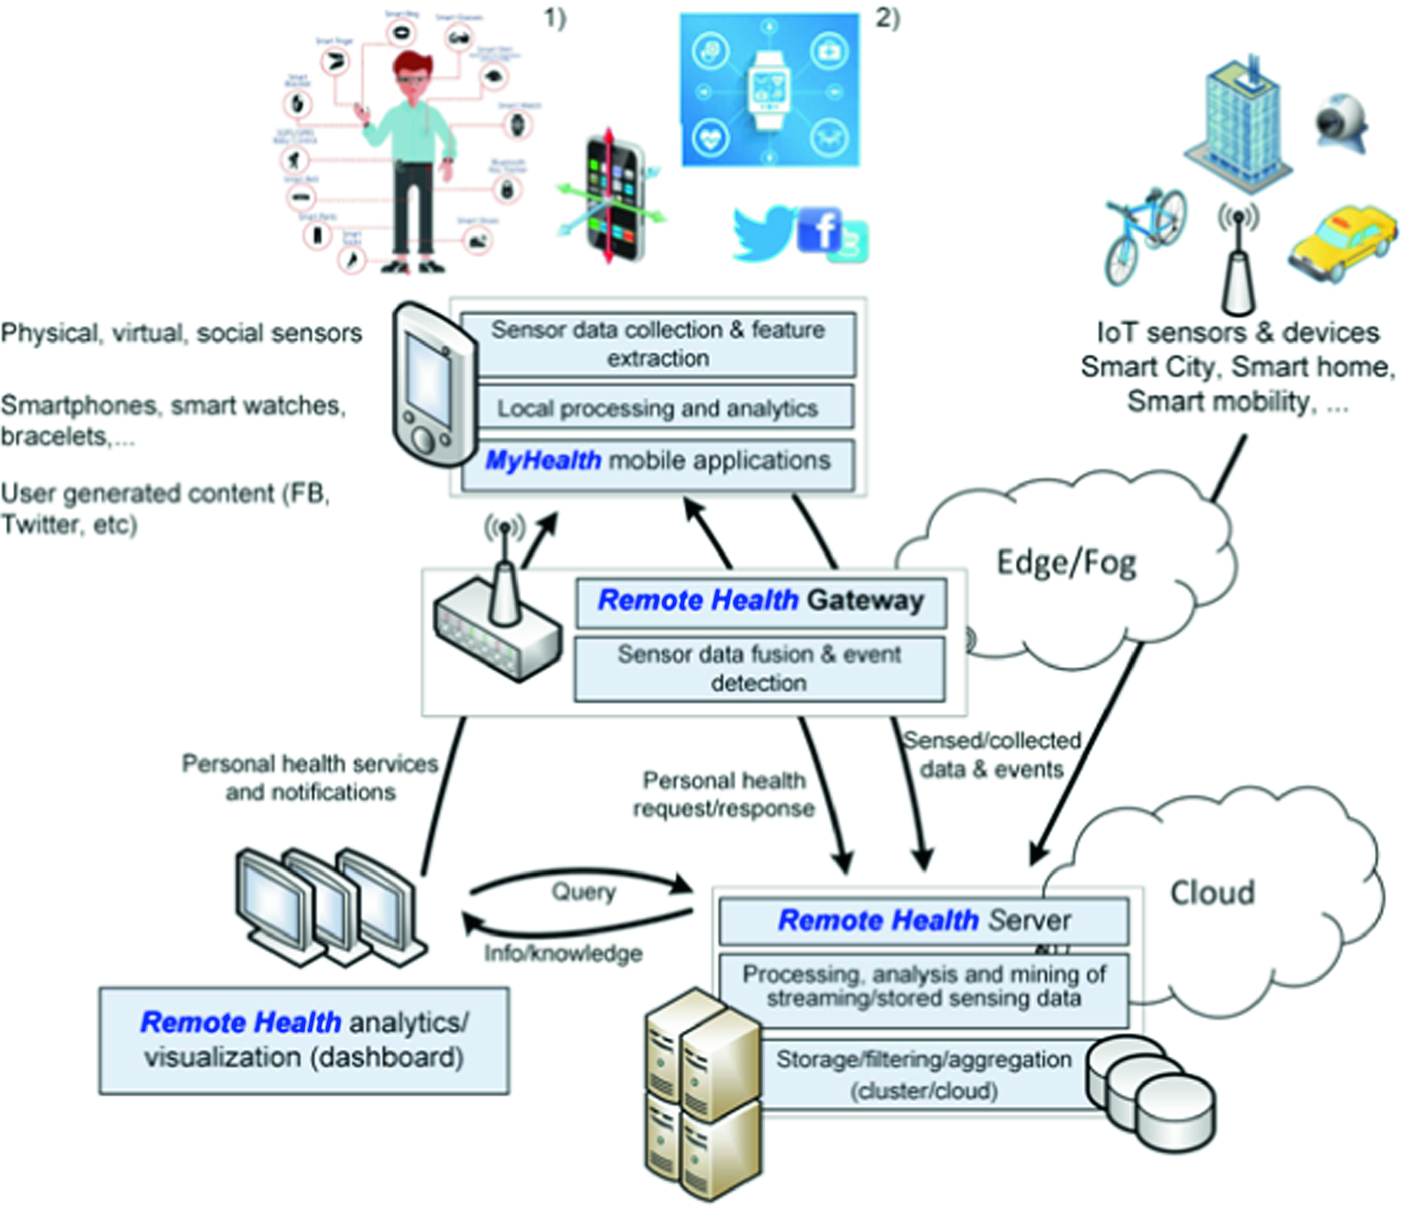 Medical Data Processing and Analysis for Remote Health and